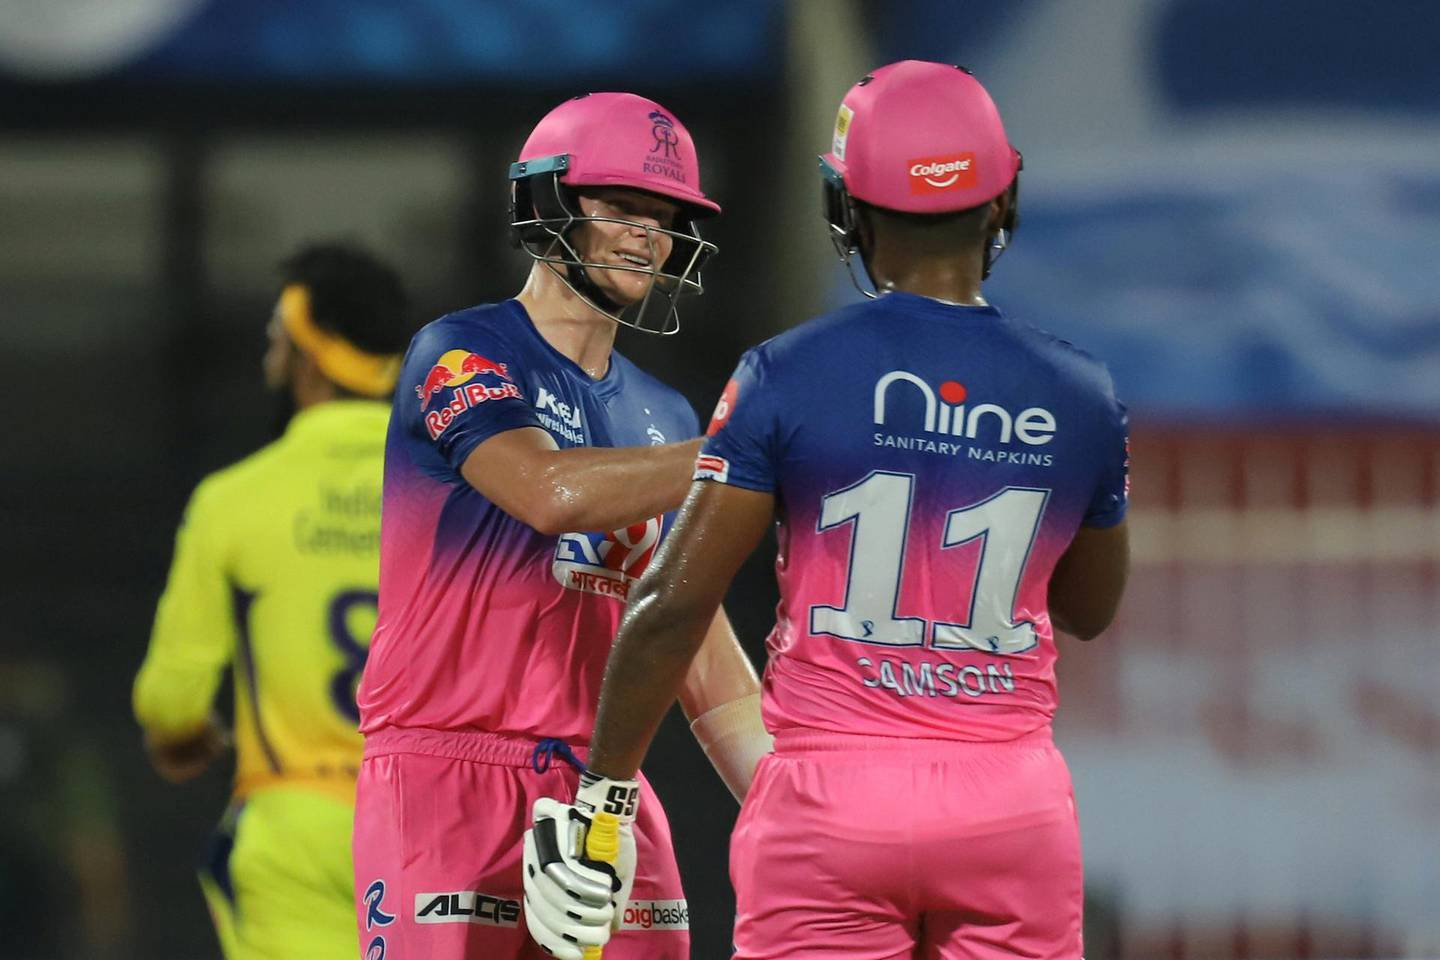 Steve Smith captain of Rajasthan Royals and Sanju Samson of Rajasthan Royals during match 4 of season 13 of the Dream 11 Indian Premier League (IPL) between Rajasthan Royals and Chennai Super Kings held at the Sharjah Cricket Stadium, Sharjah in the United Arab Emirates on the 22nd September 2020. Photo by: Deepak Malik  / Sportzpics for BCCI